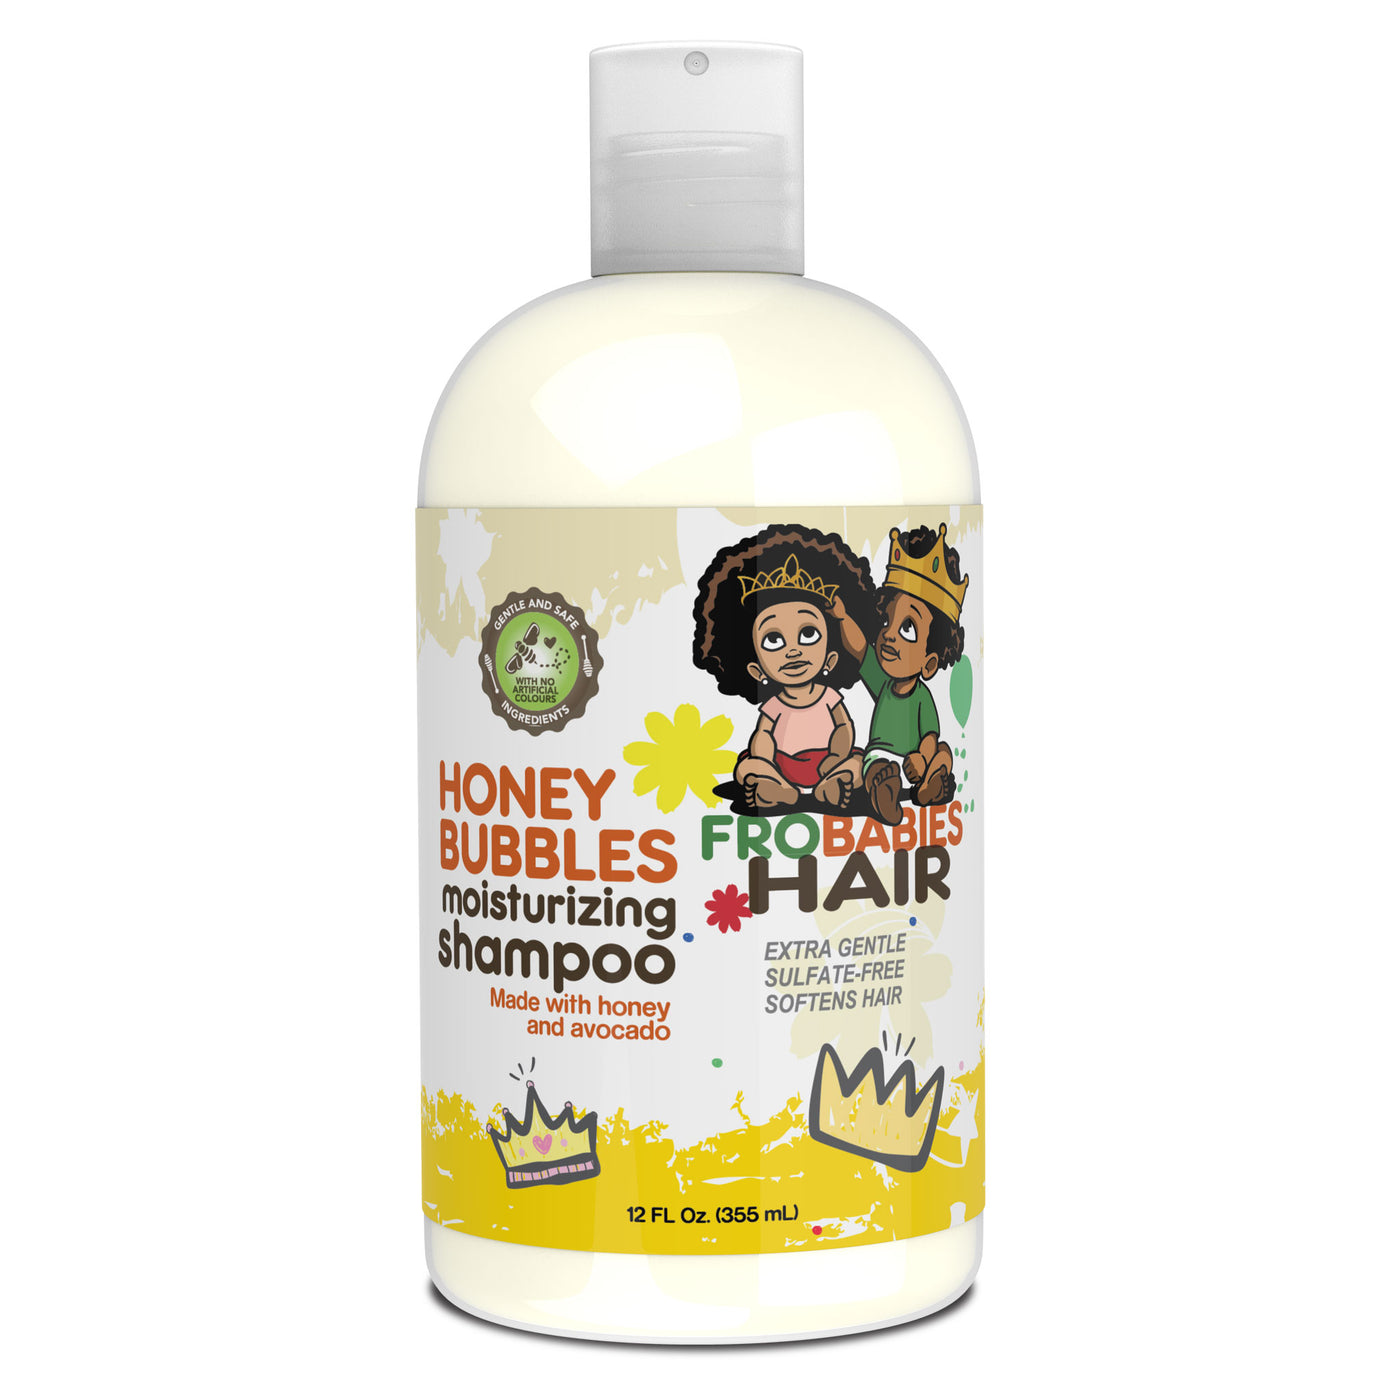 Honey Bubbles Moisturizing Shampoo 12oz